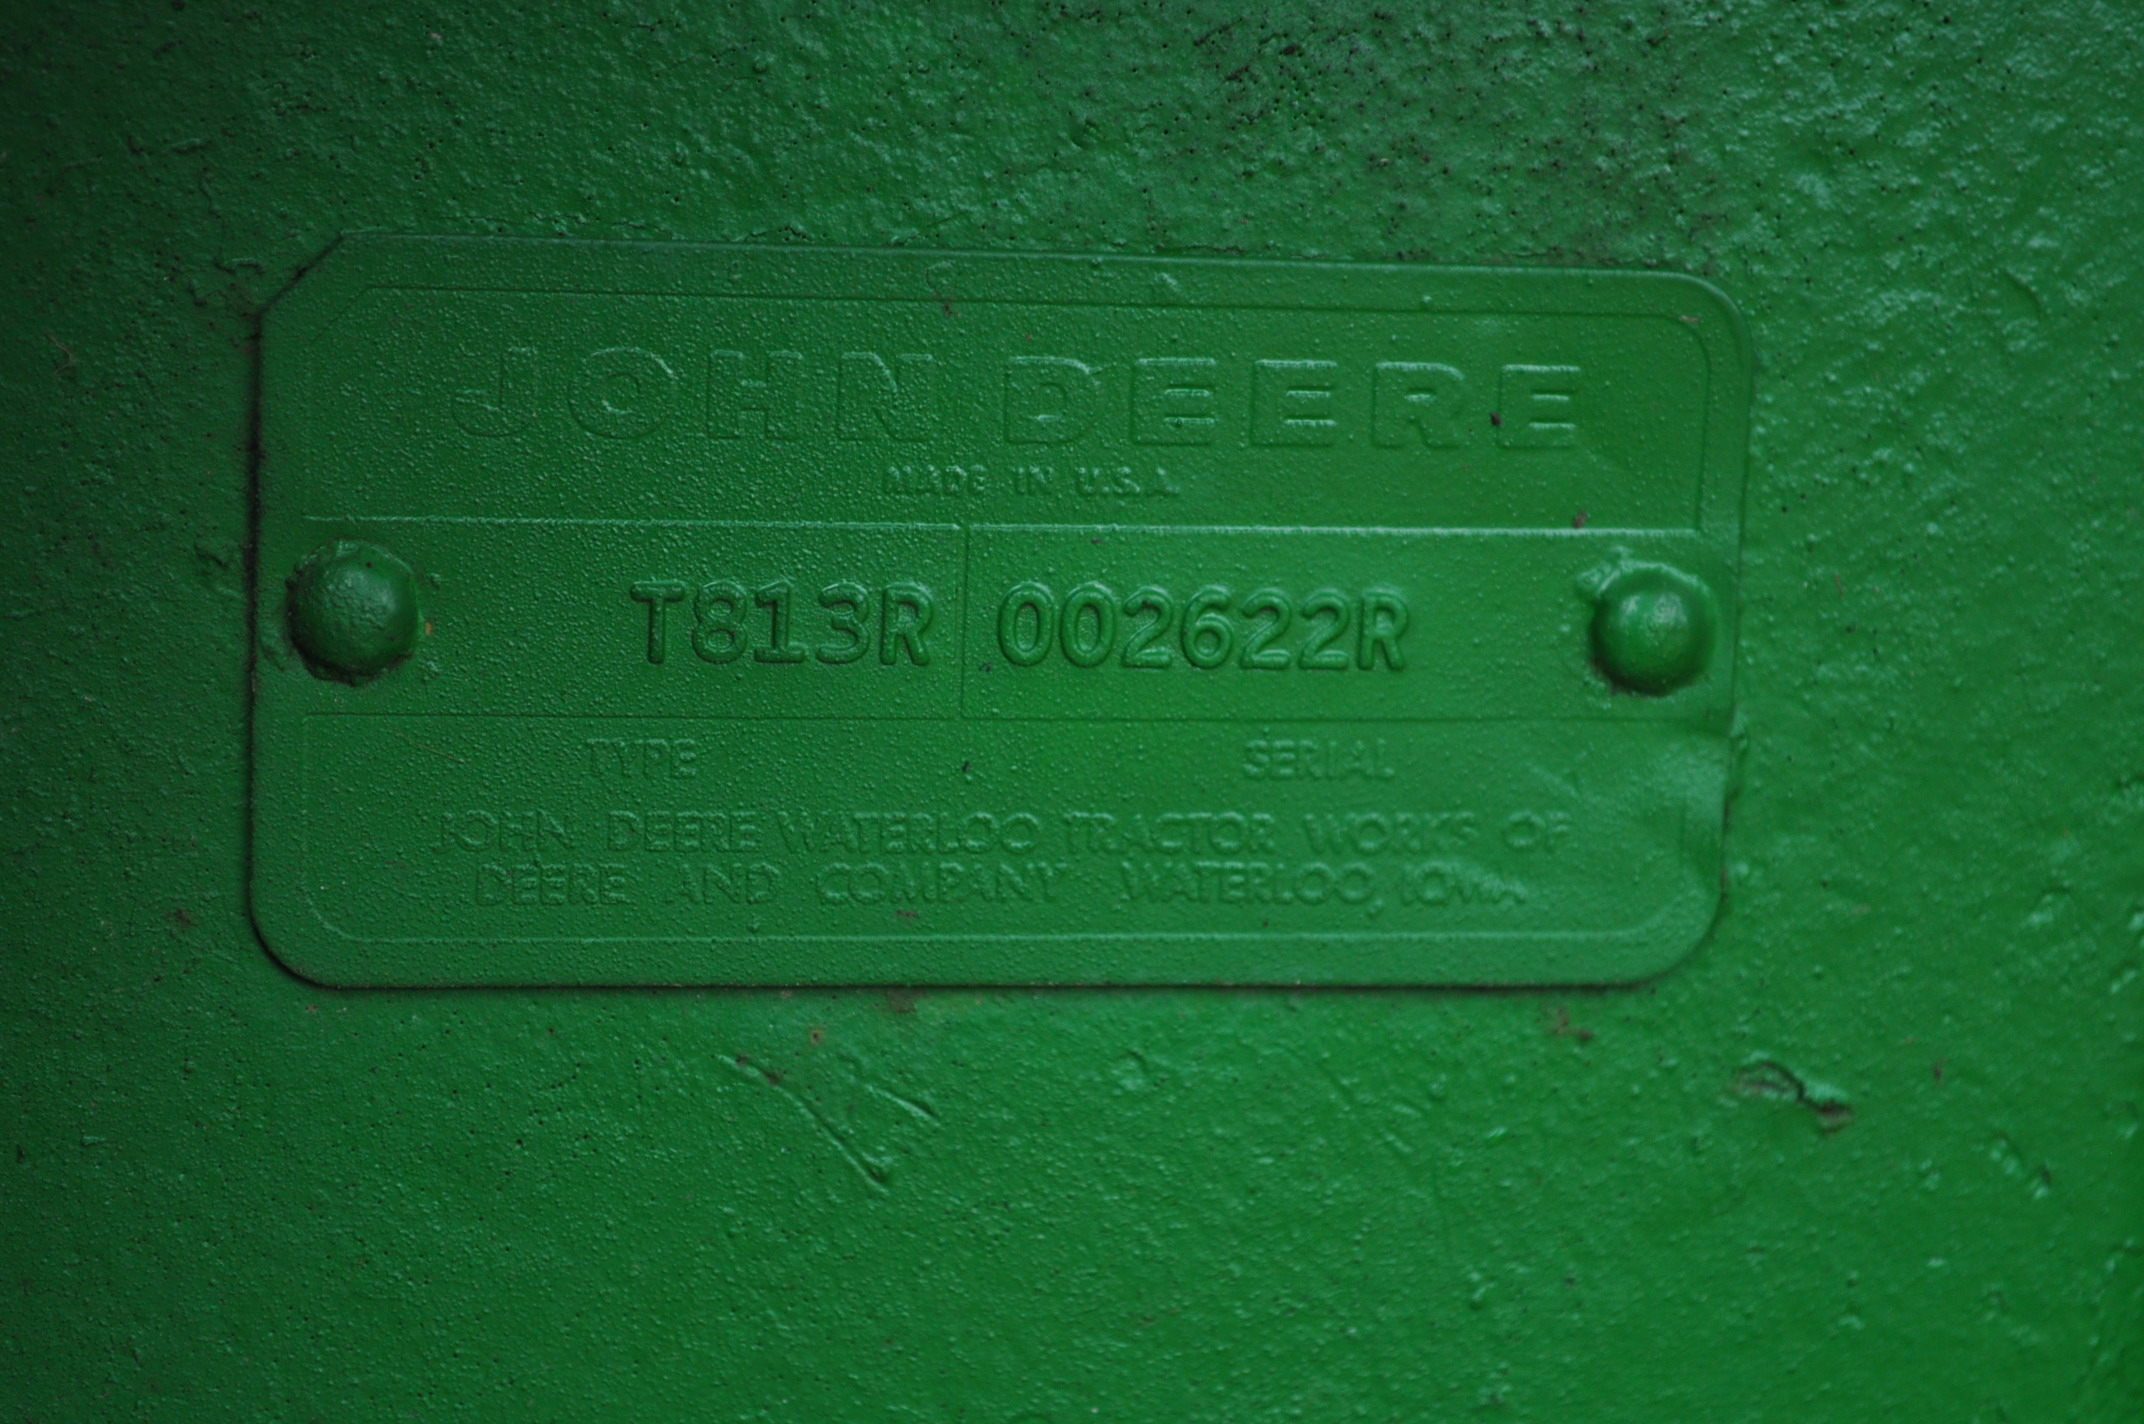 John Deere 4520 tractor, ***4520 frame with 4620 engine**** diesel, 18.4-38 new inside rear - Image 12 of 17